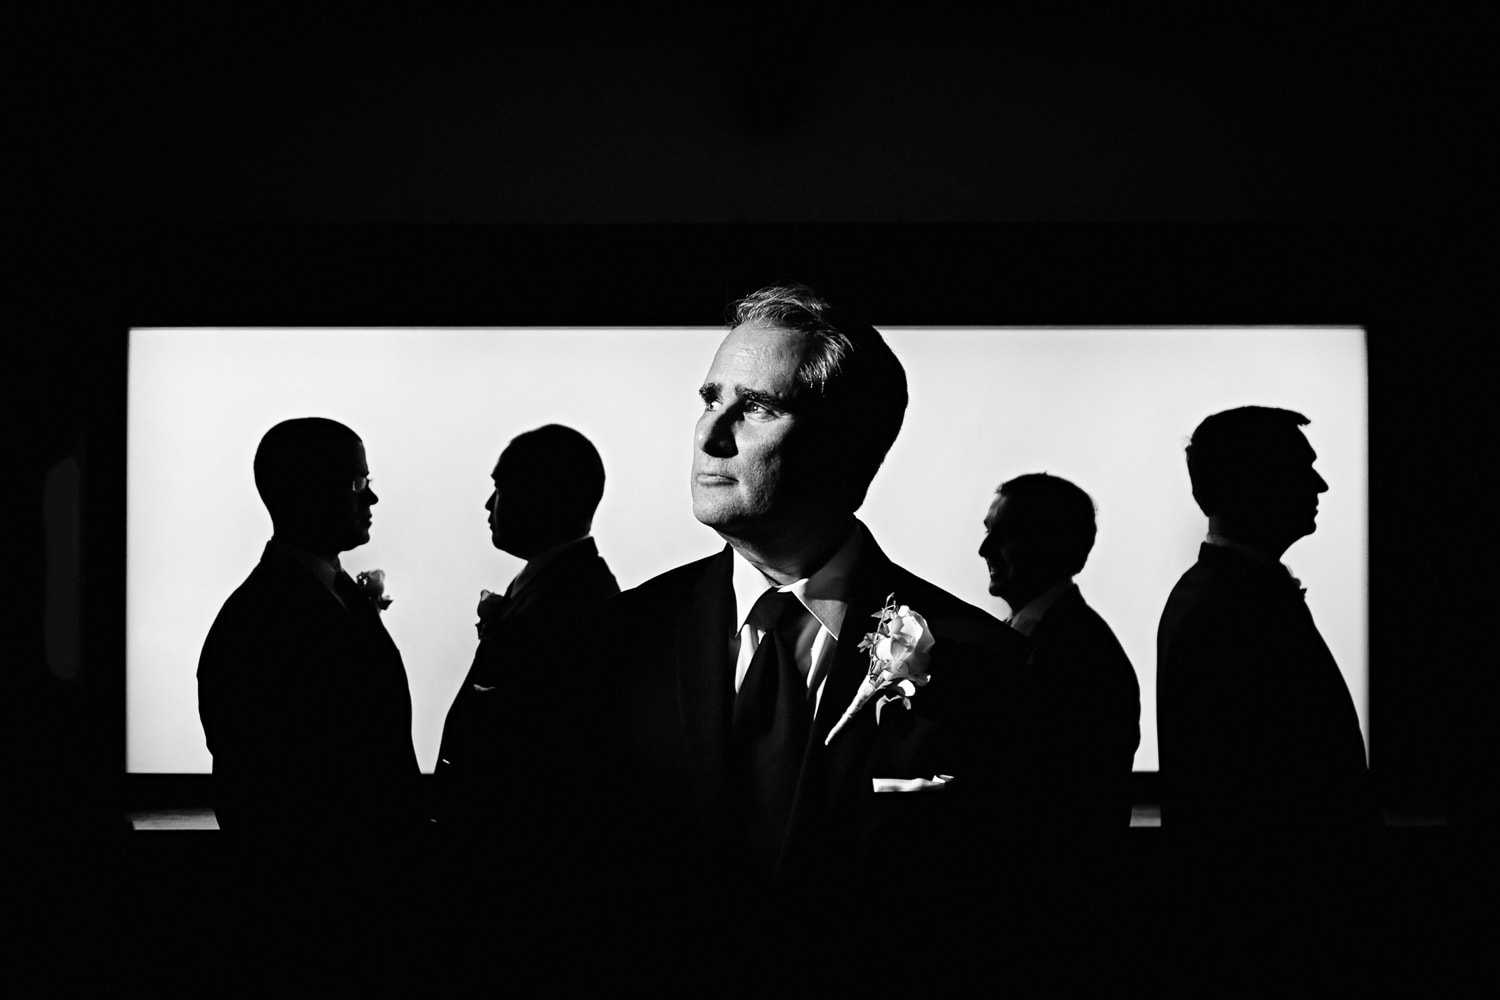 super-creative-groomsmen-shot.jpg